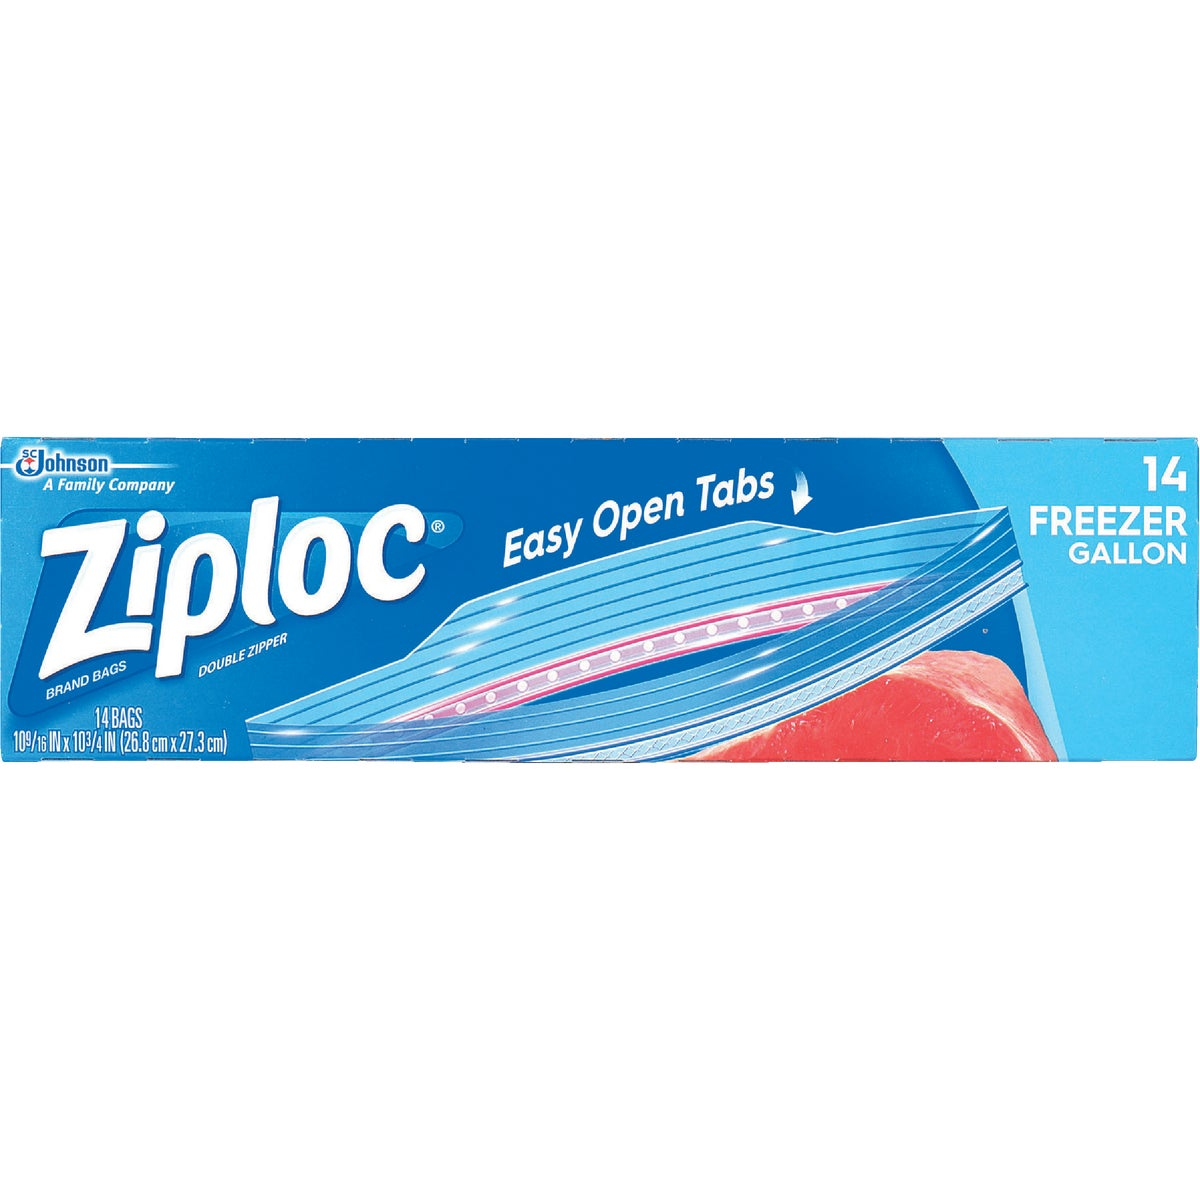 GAL ZIPLOC FREEZER BAG